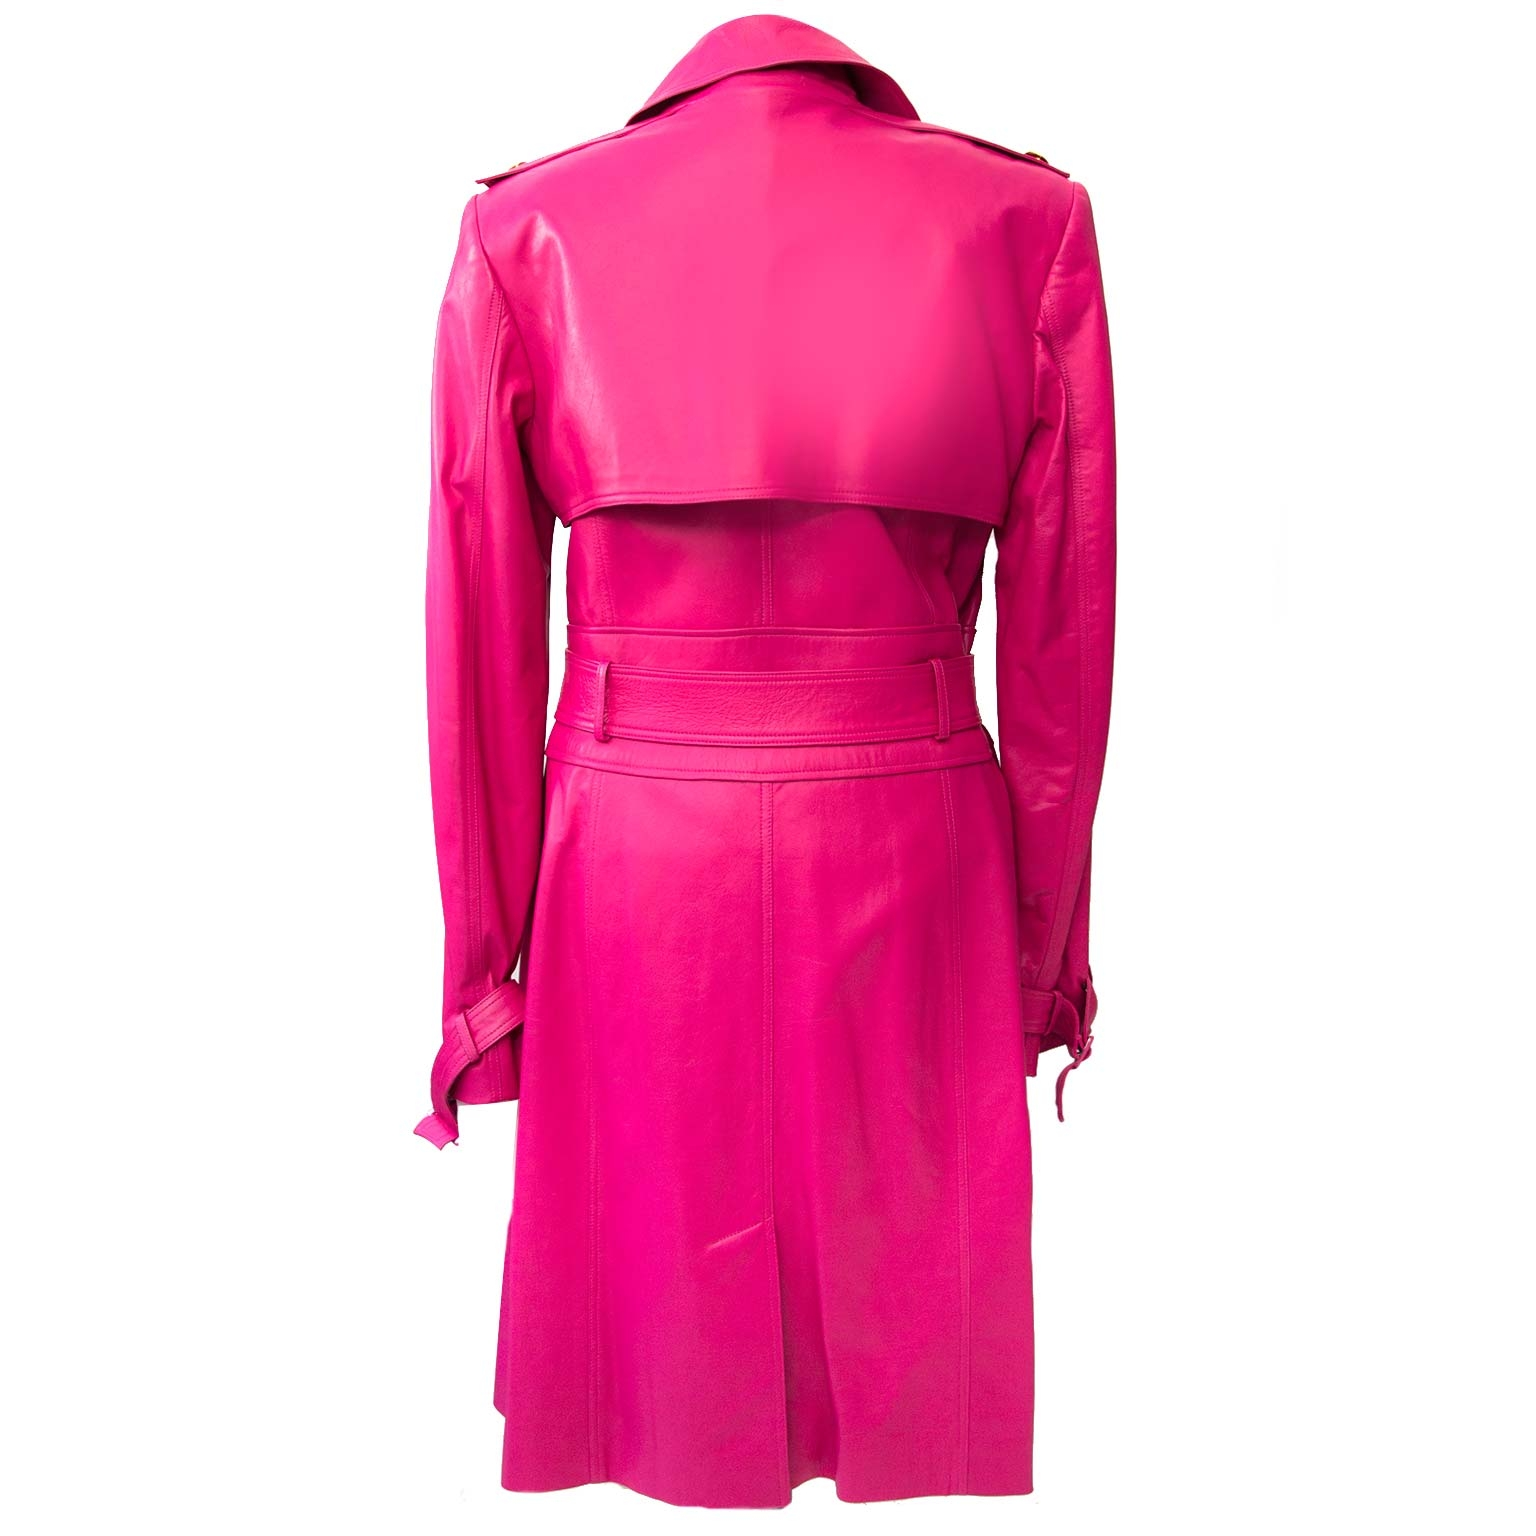 Versace Pink Limited 2011 Medusa Leather Trench - Size 46 (Italian). Buy authentic secondhand Versace coat online at LabelLOV. Koop tweedehands Versace trench jas in de webshop van LabelLOV. Acheter en ligne un limited edition trench de Versace.